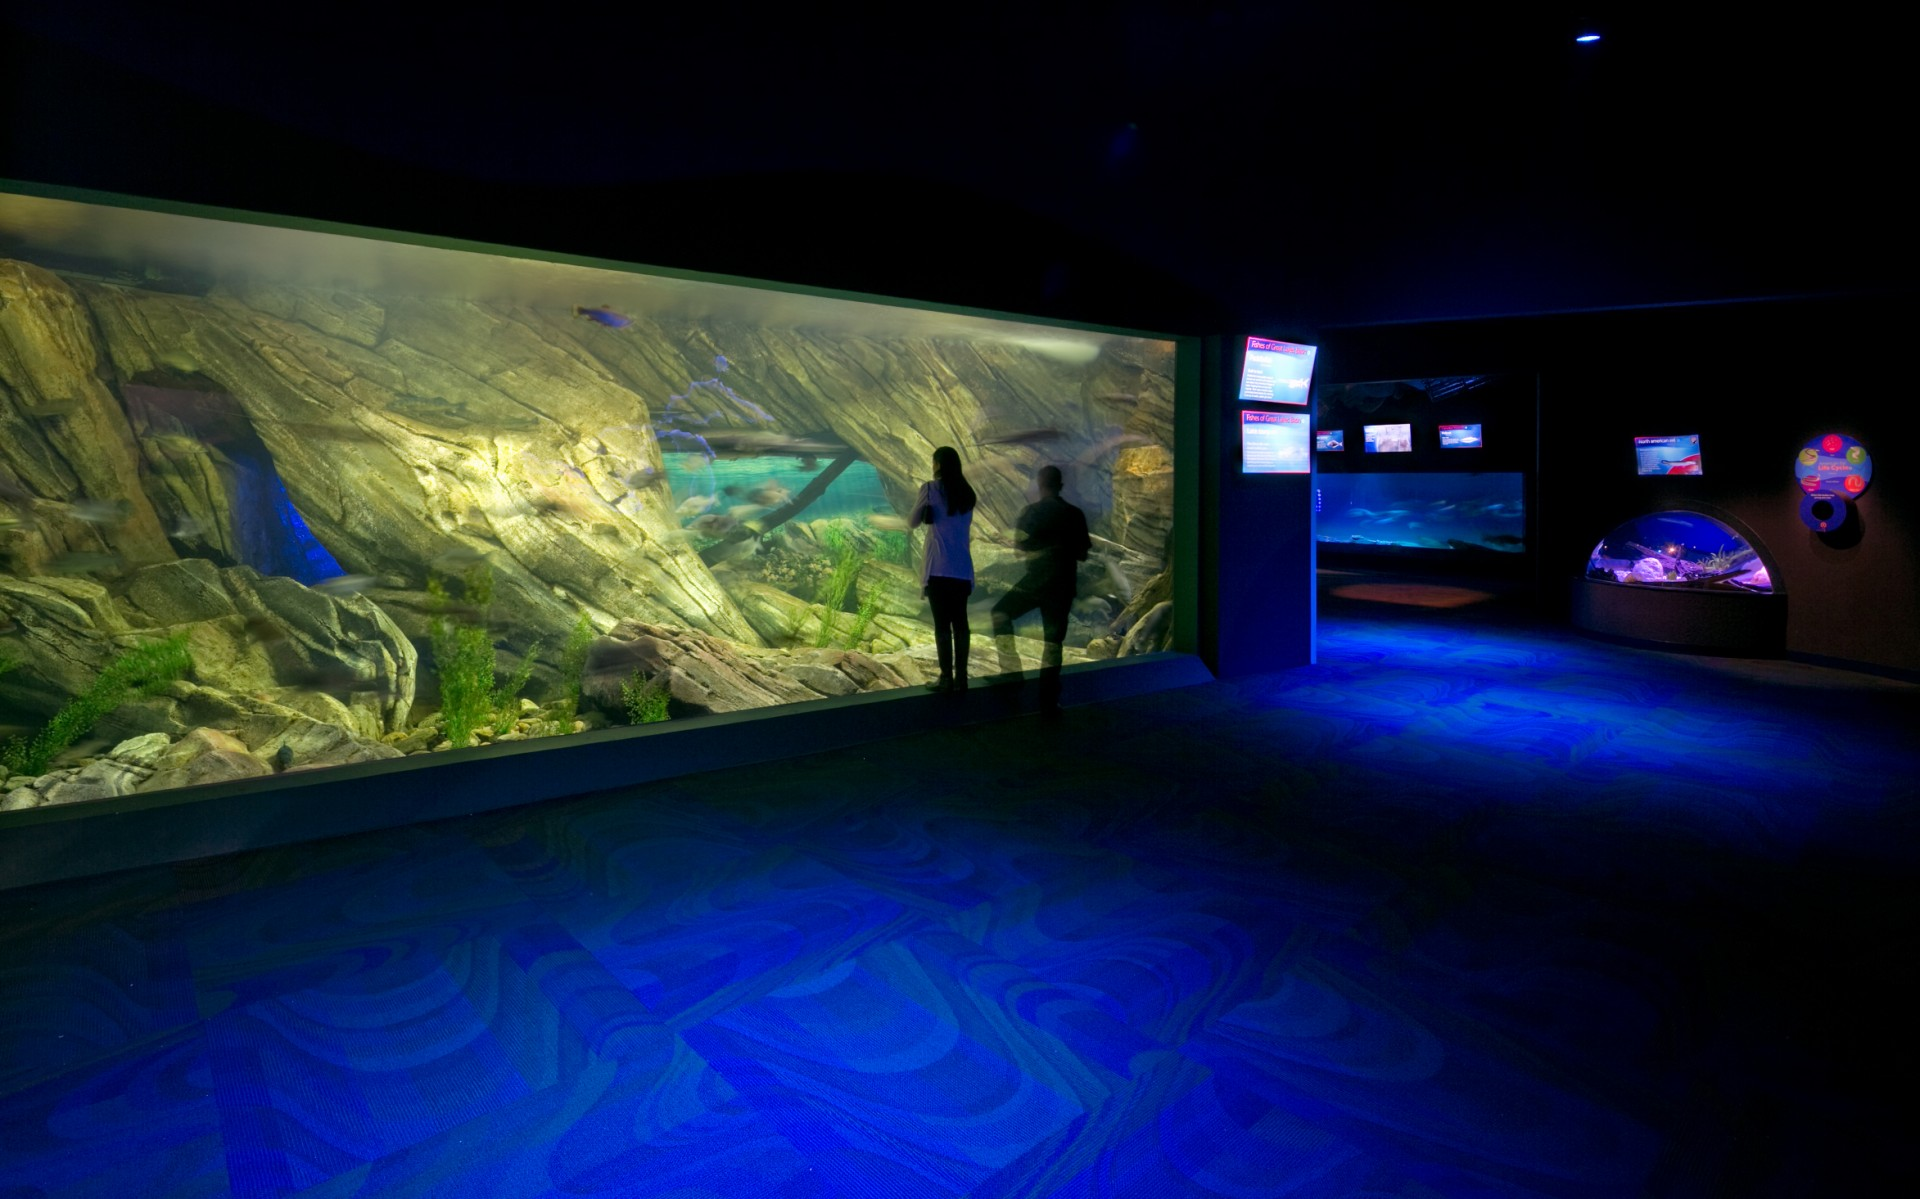 The firm chose marine-grade Lumenbeam XLarge luminaires for the aquarium's large feature tanks, opting for tight, focused beams of lights. – Mulvey+Banani International Inc.